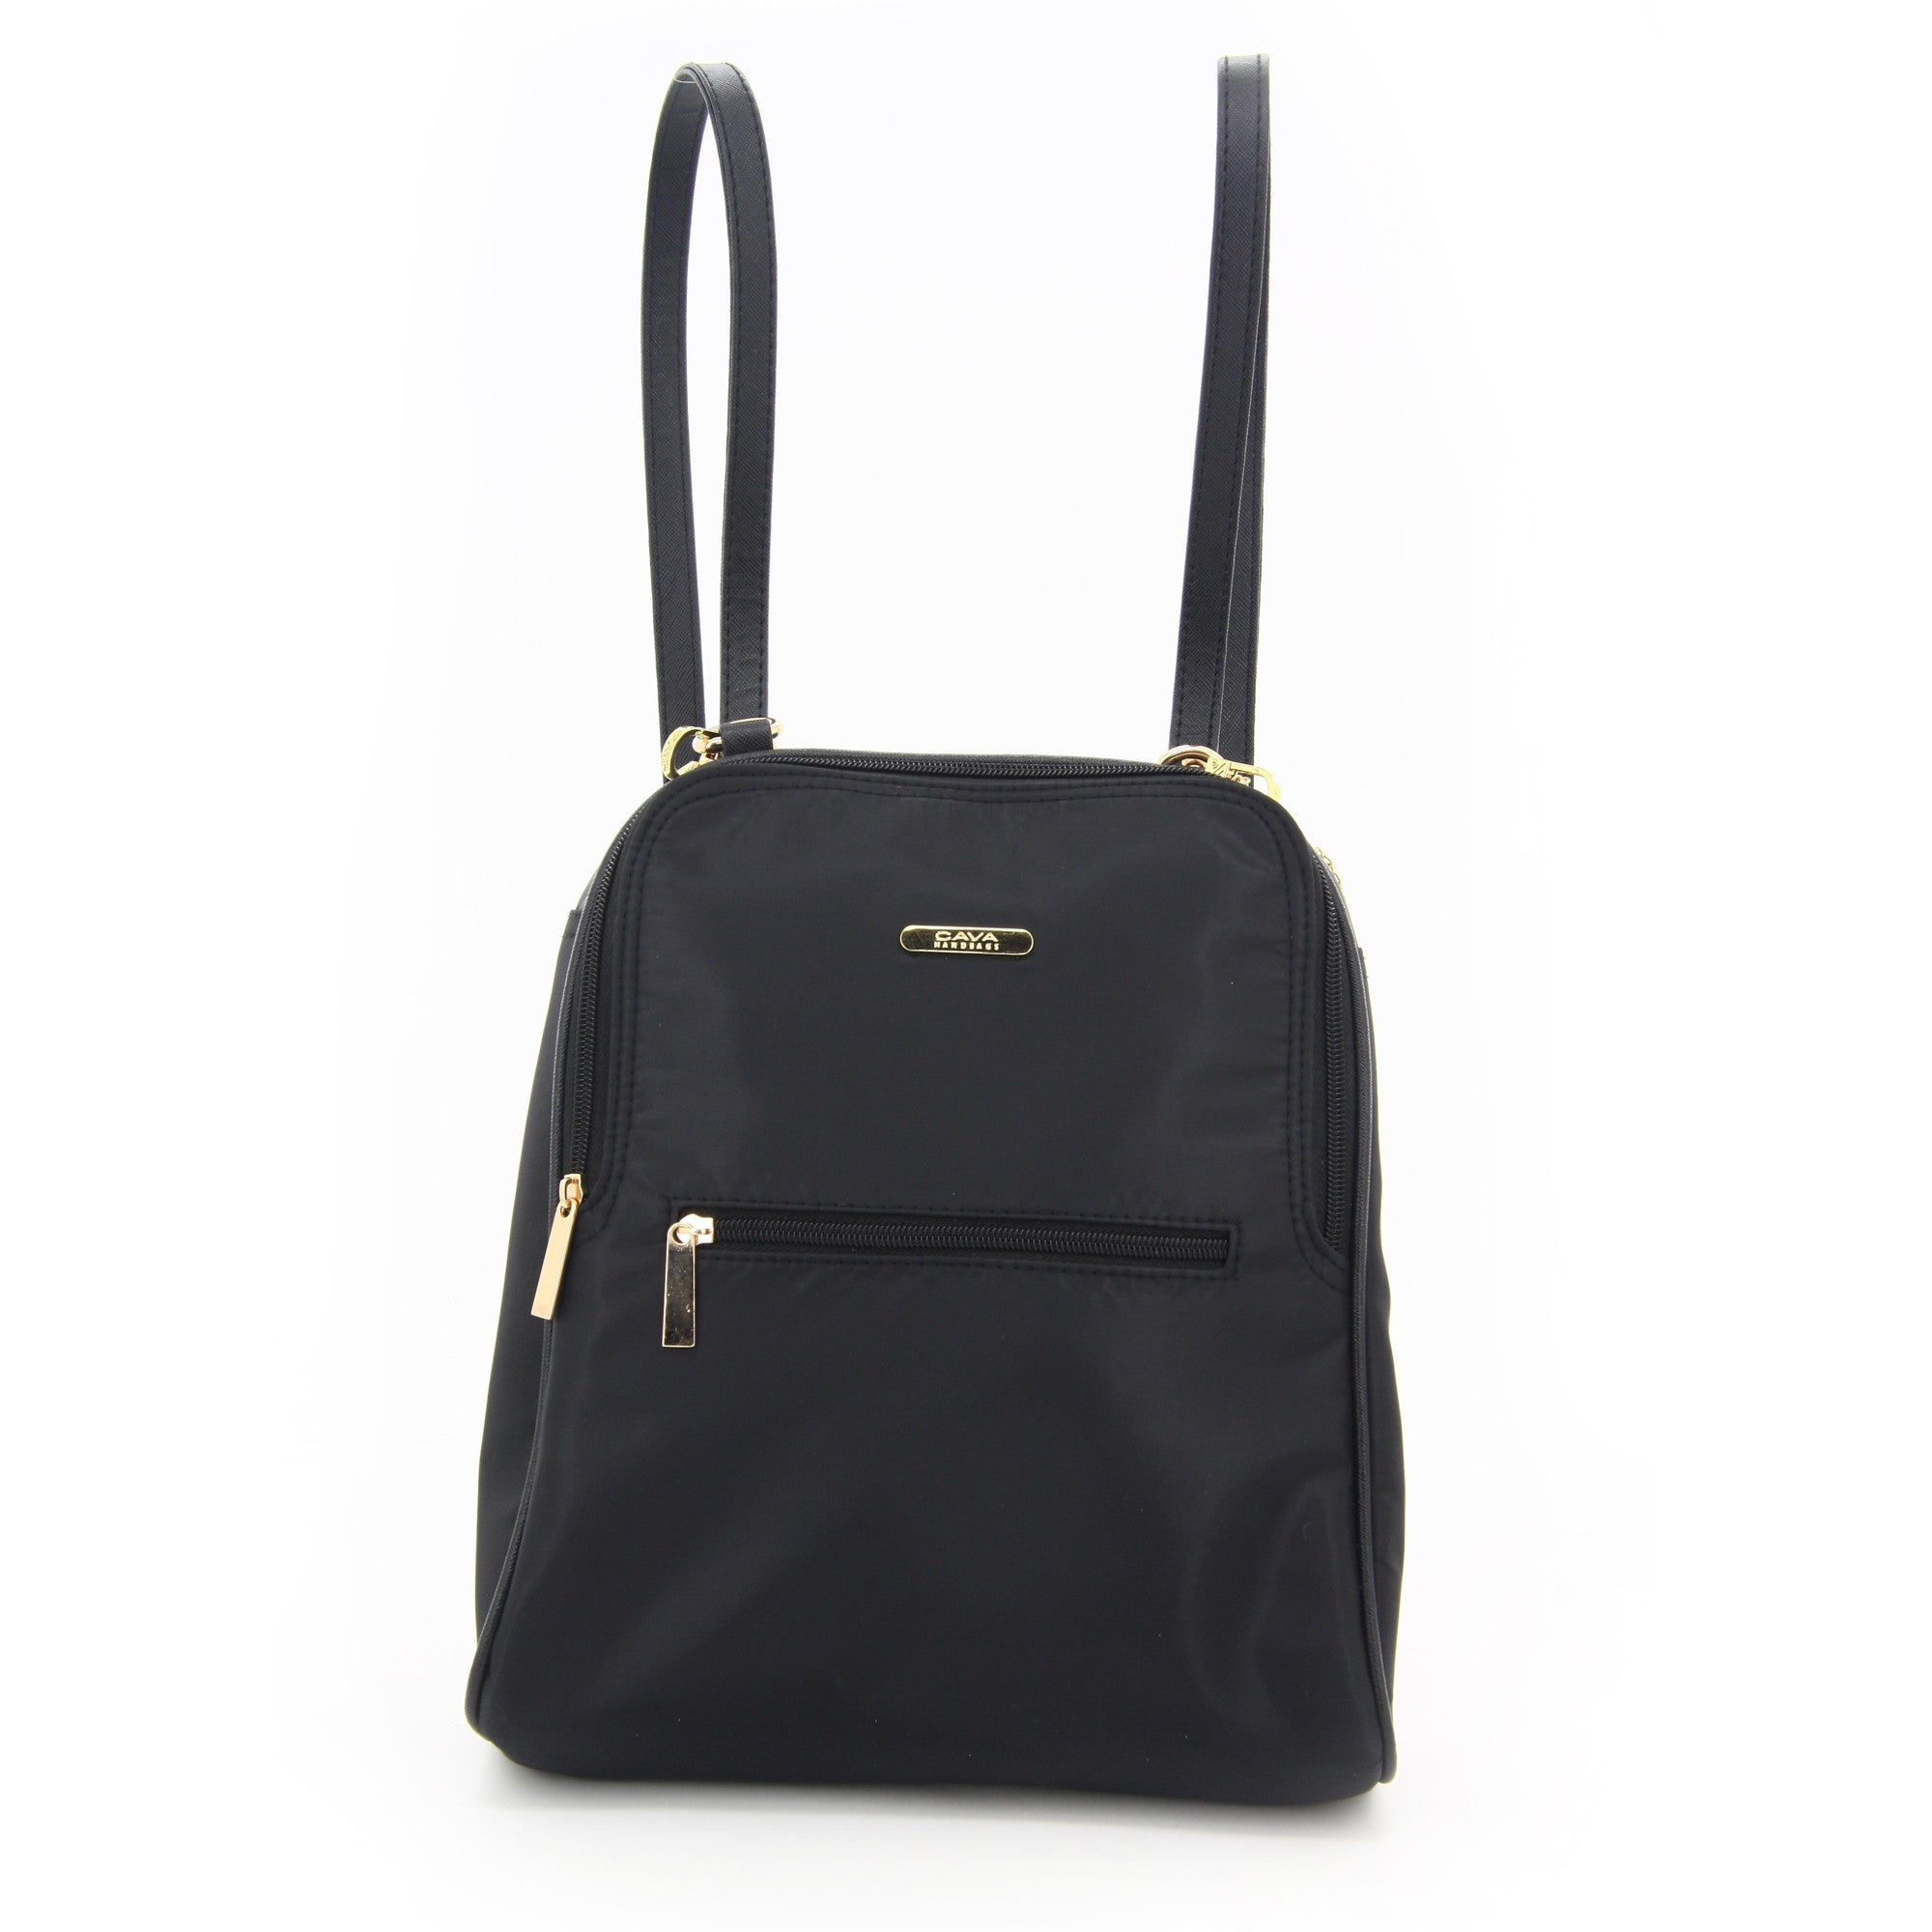 C16DC734BK Luxe Wo Backpack Shoulder Bag 2.0 (Black)